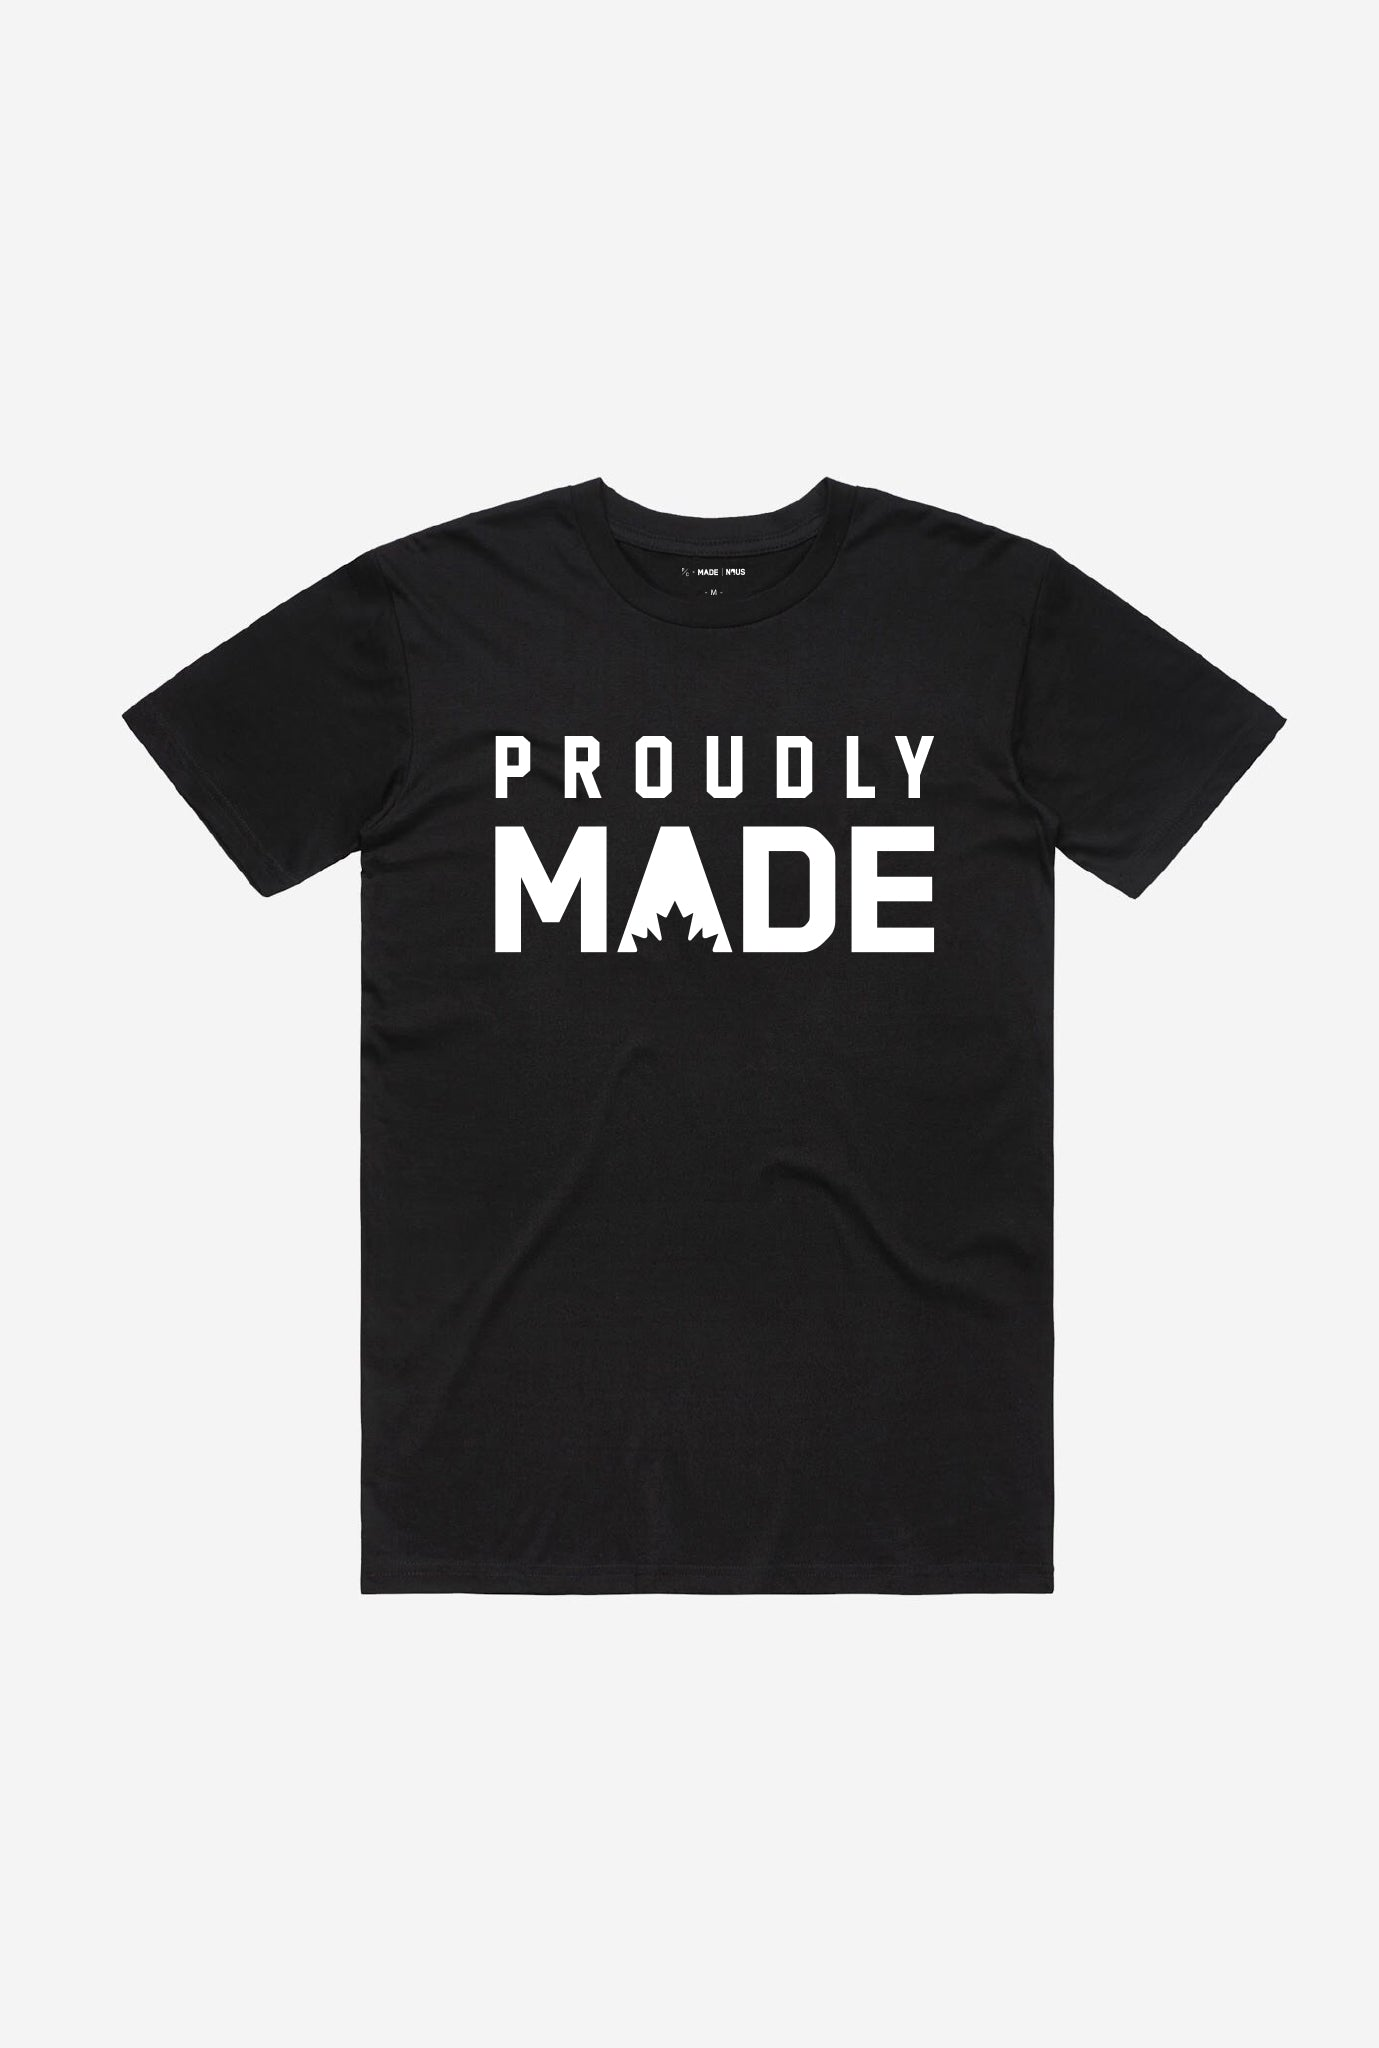 Proudly MADE Men's T-Shirt - Black